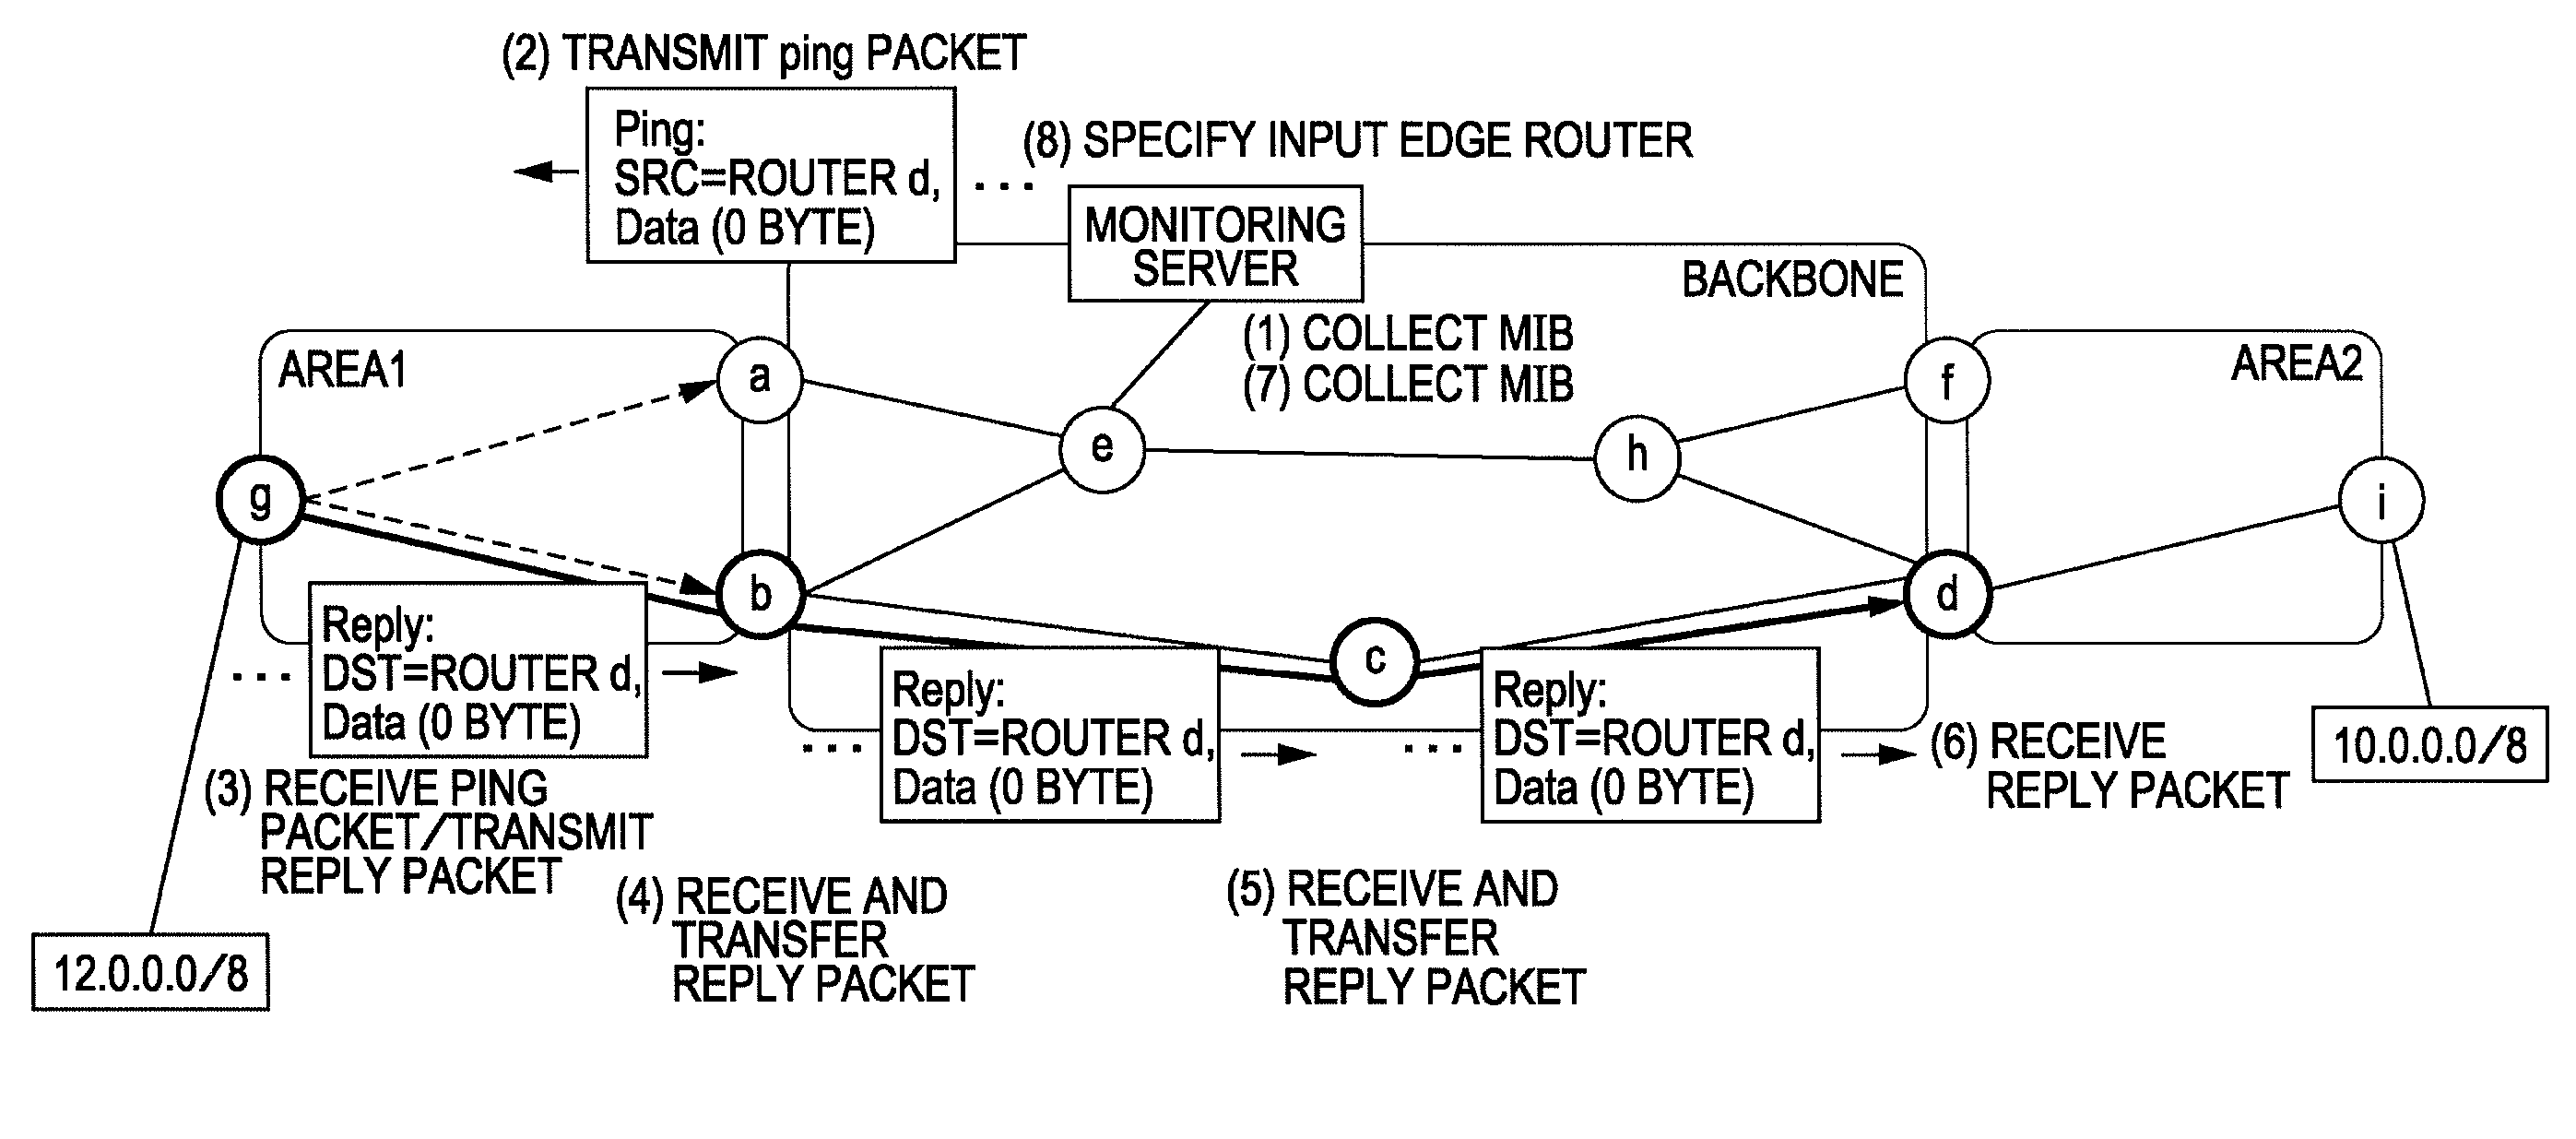 Patente US8064466 - Method for specifying input edge router